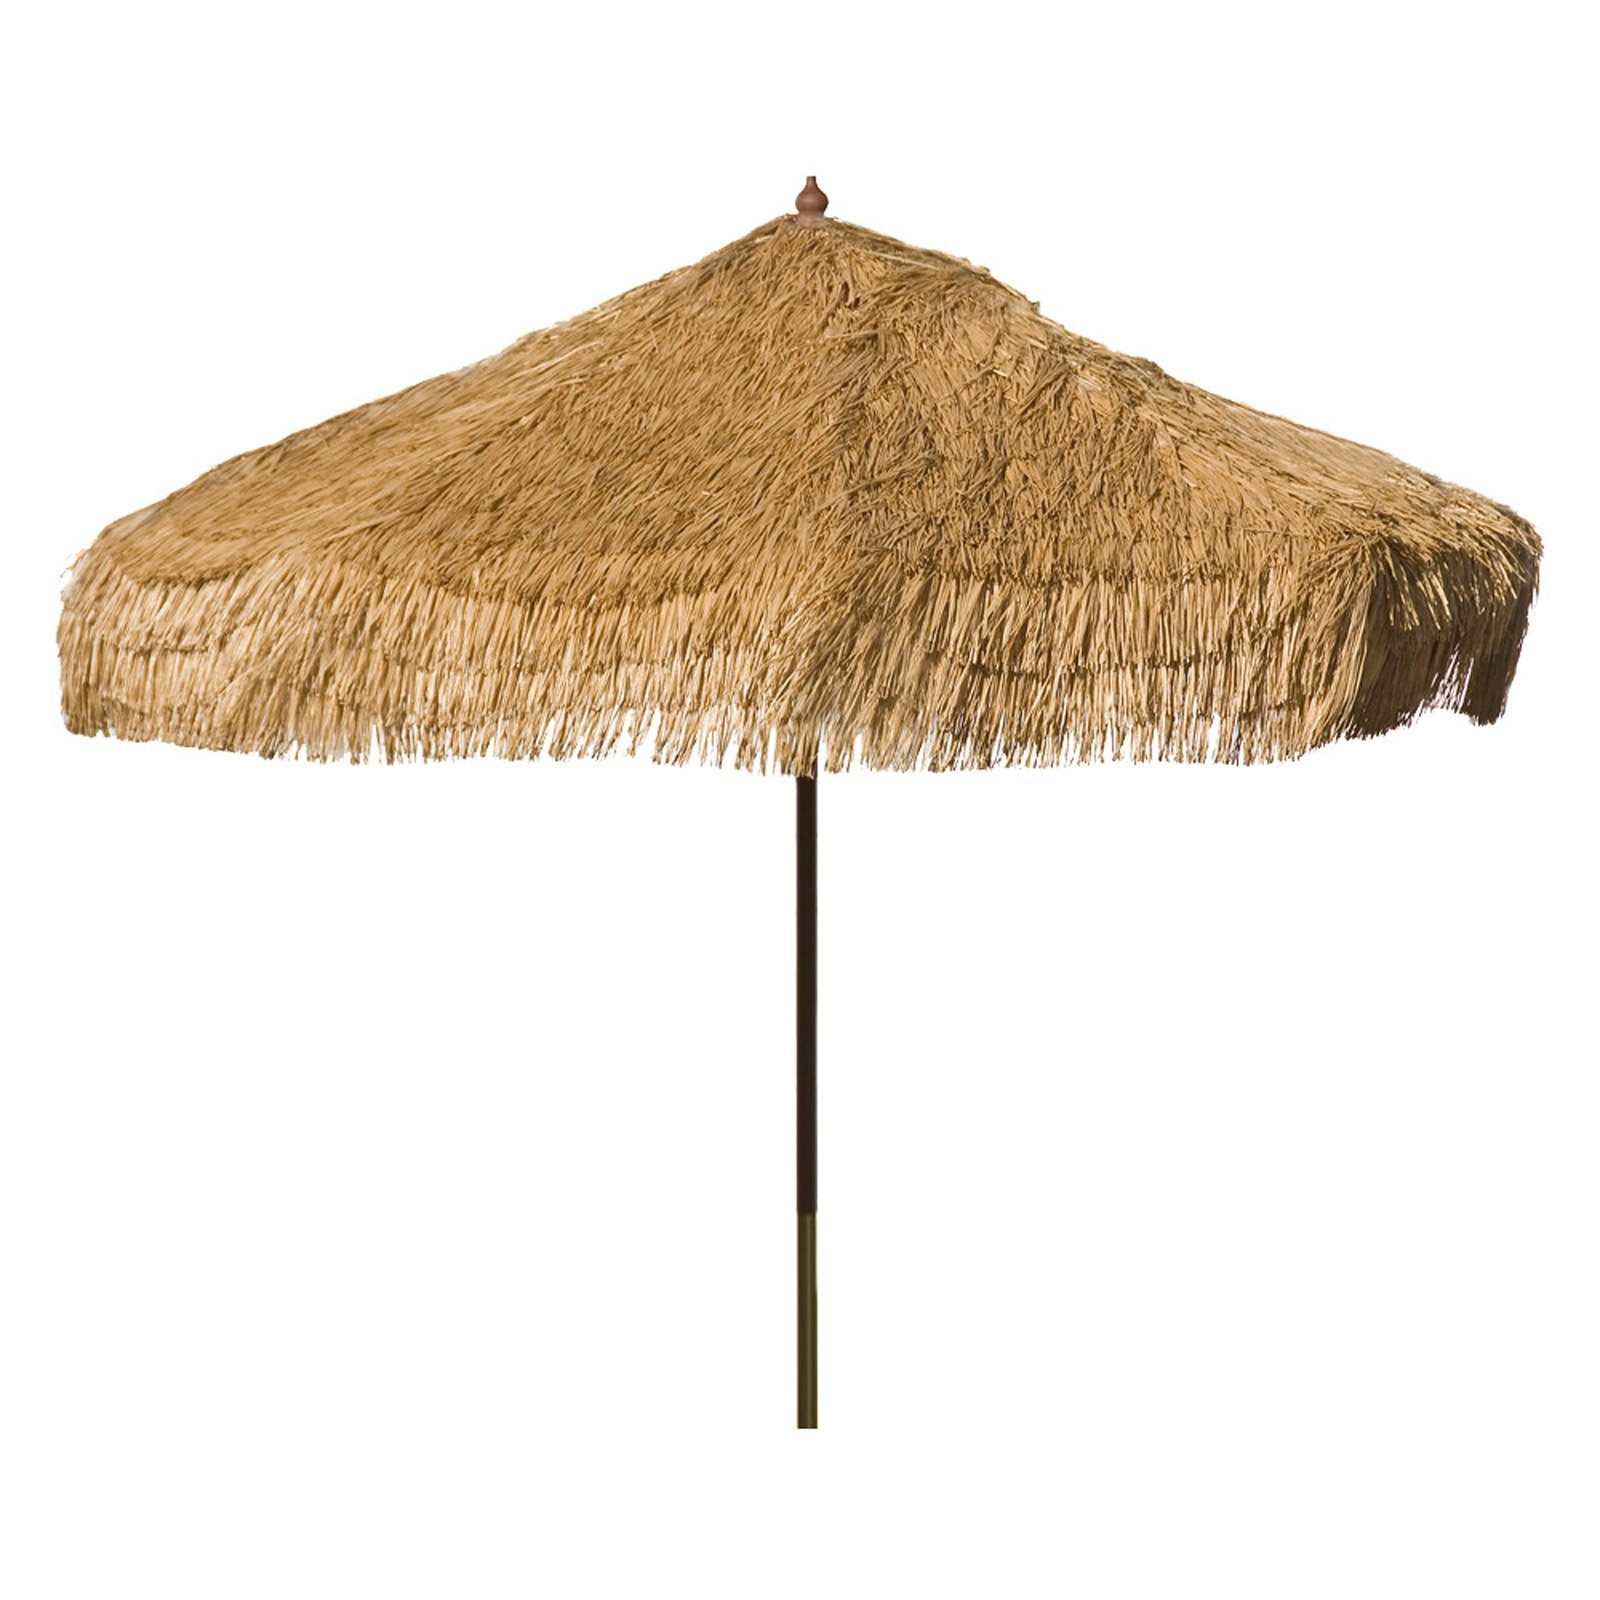 9ft Palapa Tiki Party Umbrella Home Patio Canopy Sun Brown - Patio Pole